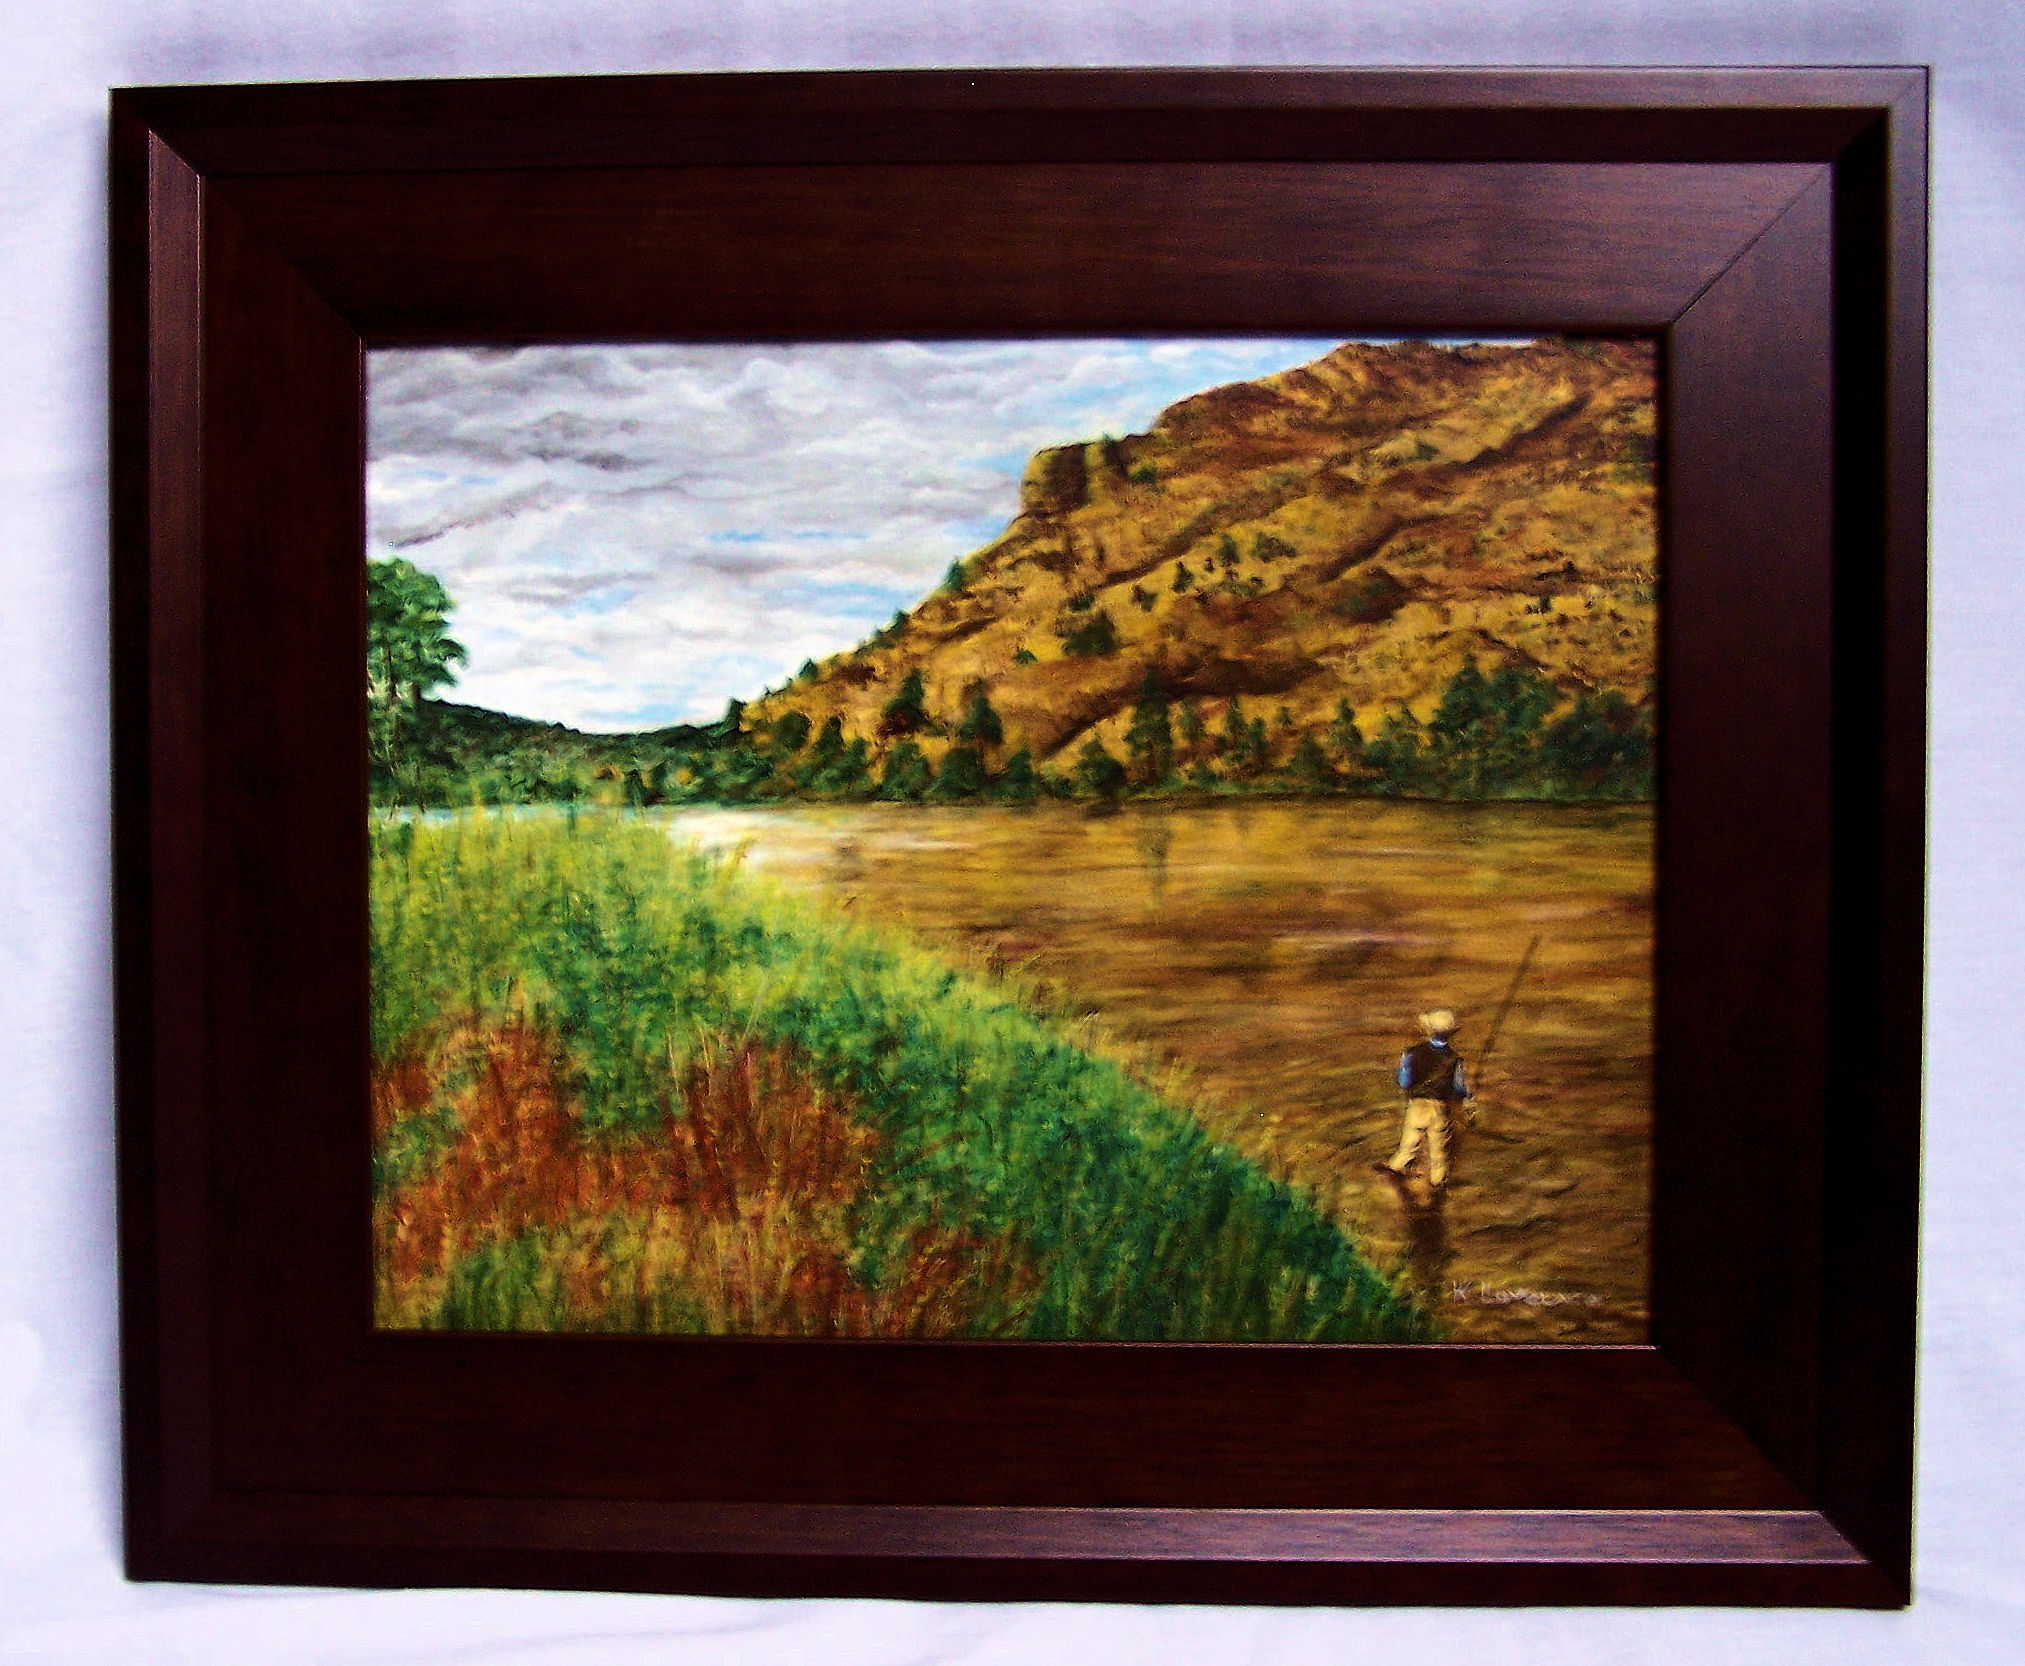 Framed Art Troutpainter Com